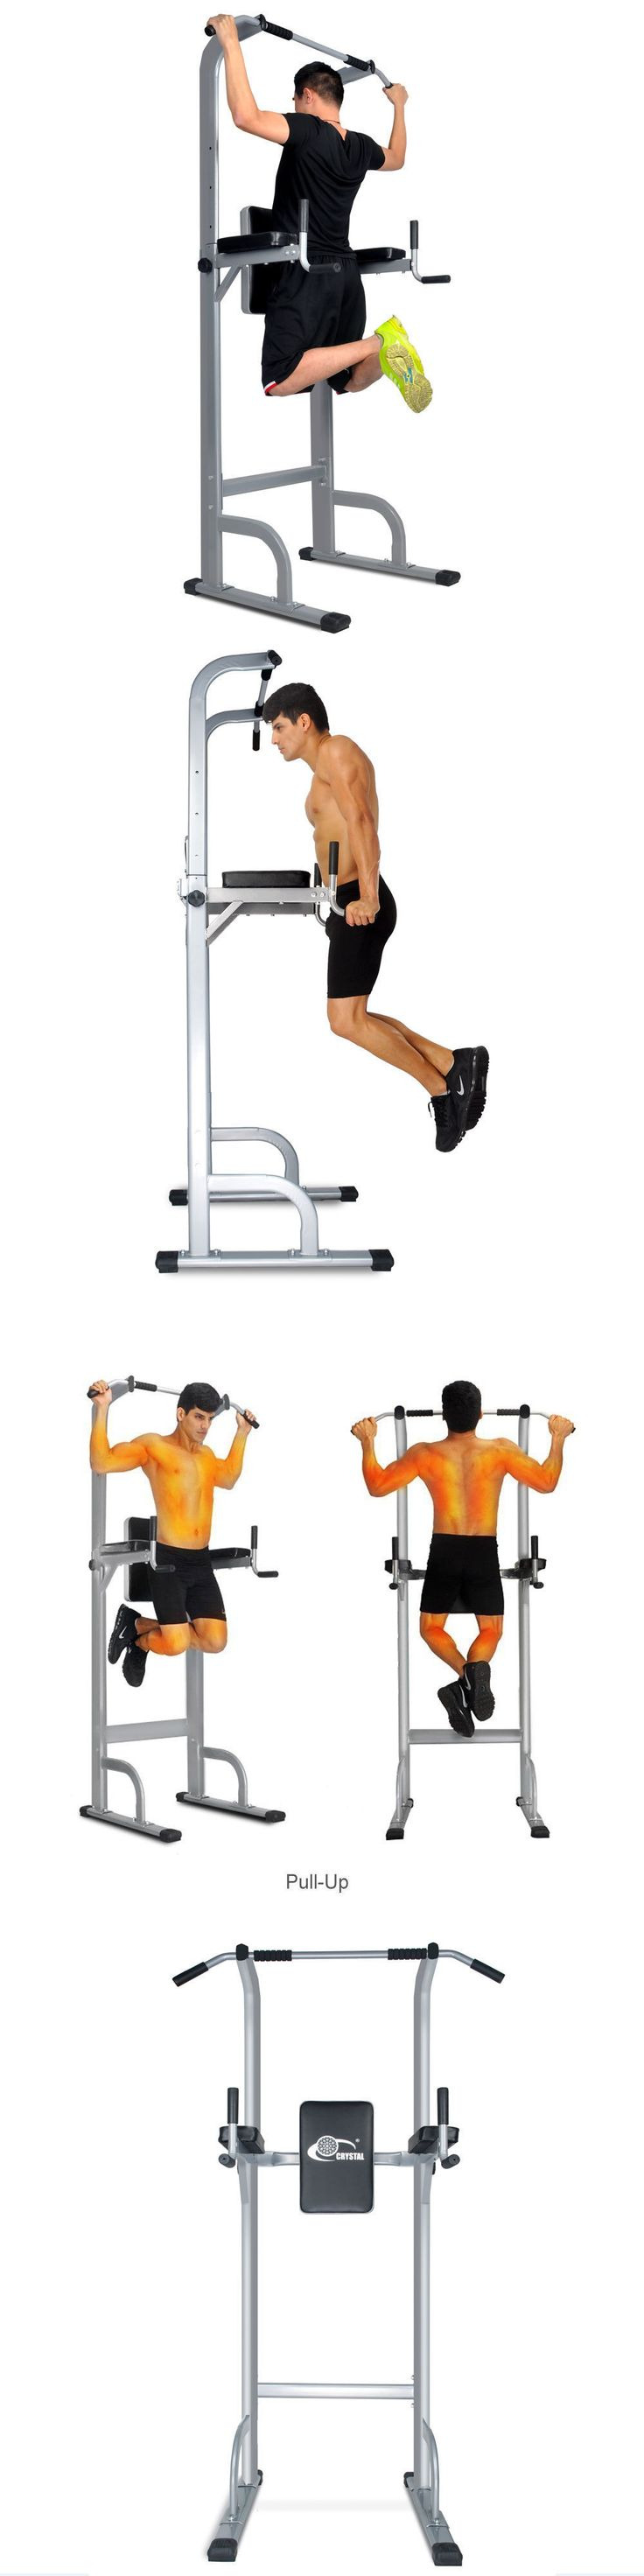 Pull Up Bars 179816: Power Tower Strength Training Fitness Equipment Pull Up Bar Standing Tower Gym -> BUY IT NOW ONLY: $119.9 on eBay!